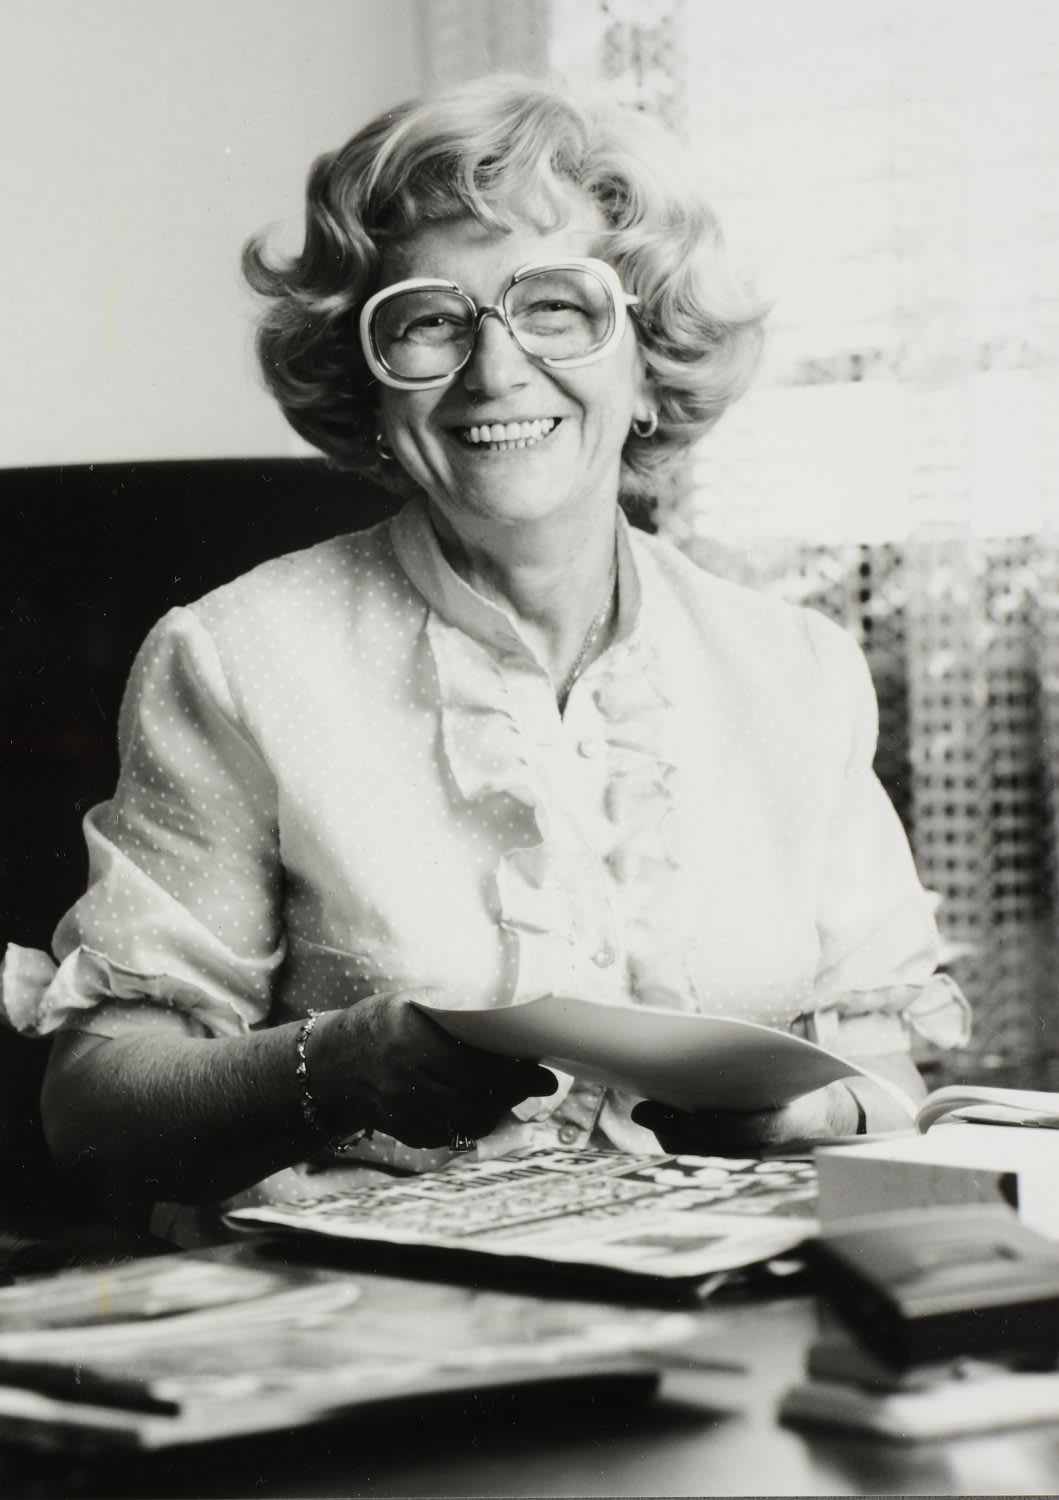 Black-and-white picture of woman in glasses smiling at the camera, Kathe, Dassler, adidas, sports, history